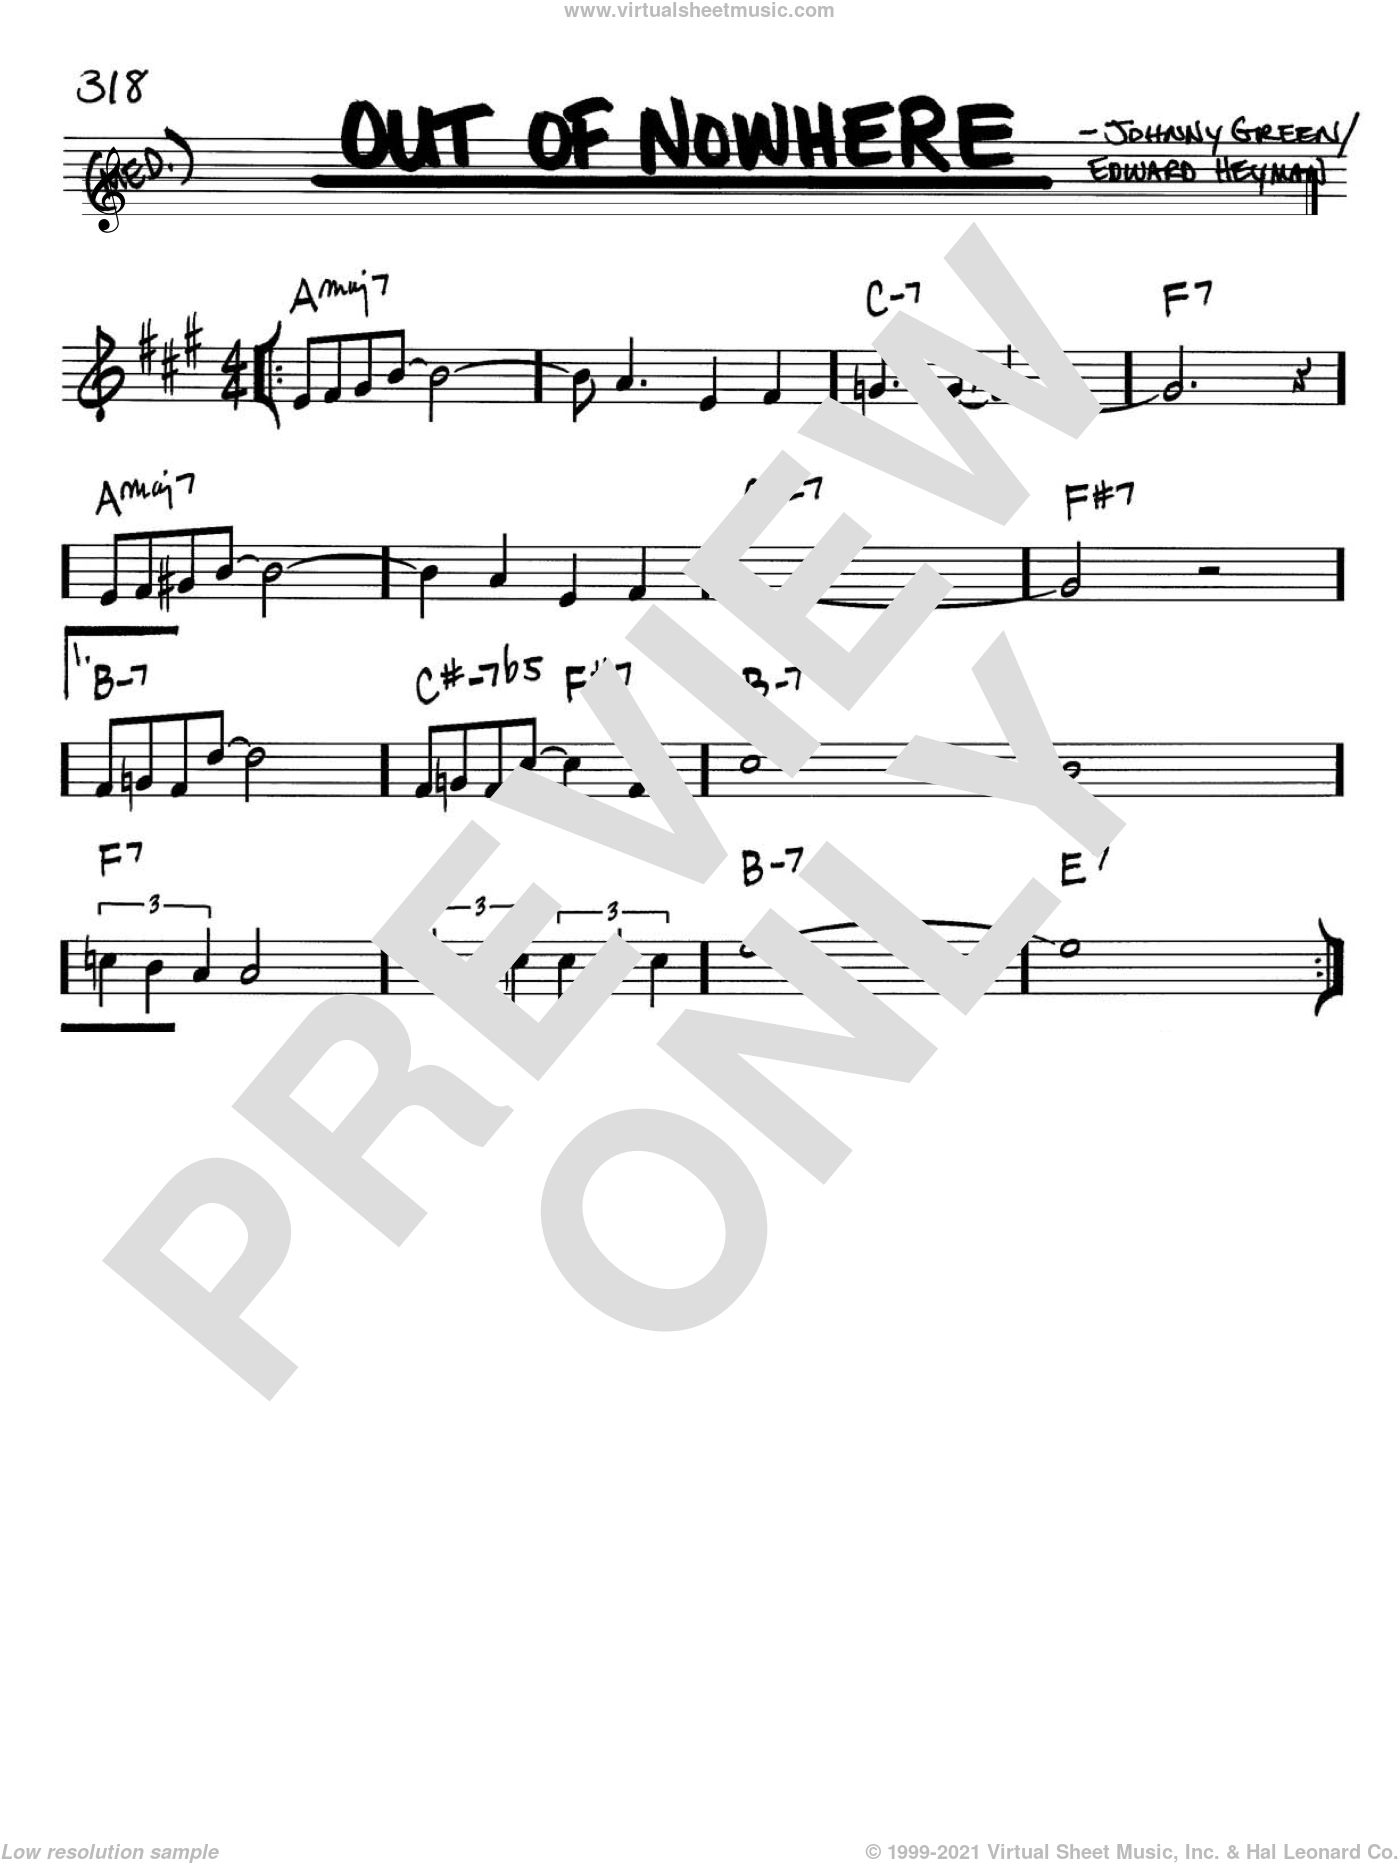 Out Of Nowhere sheet music for voice and other instruments (Bb) by Johnny Green and Edward Heyman. Score Image Preview.